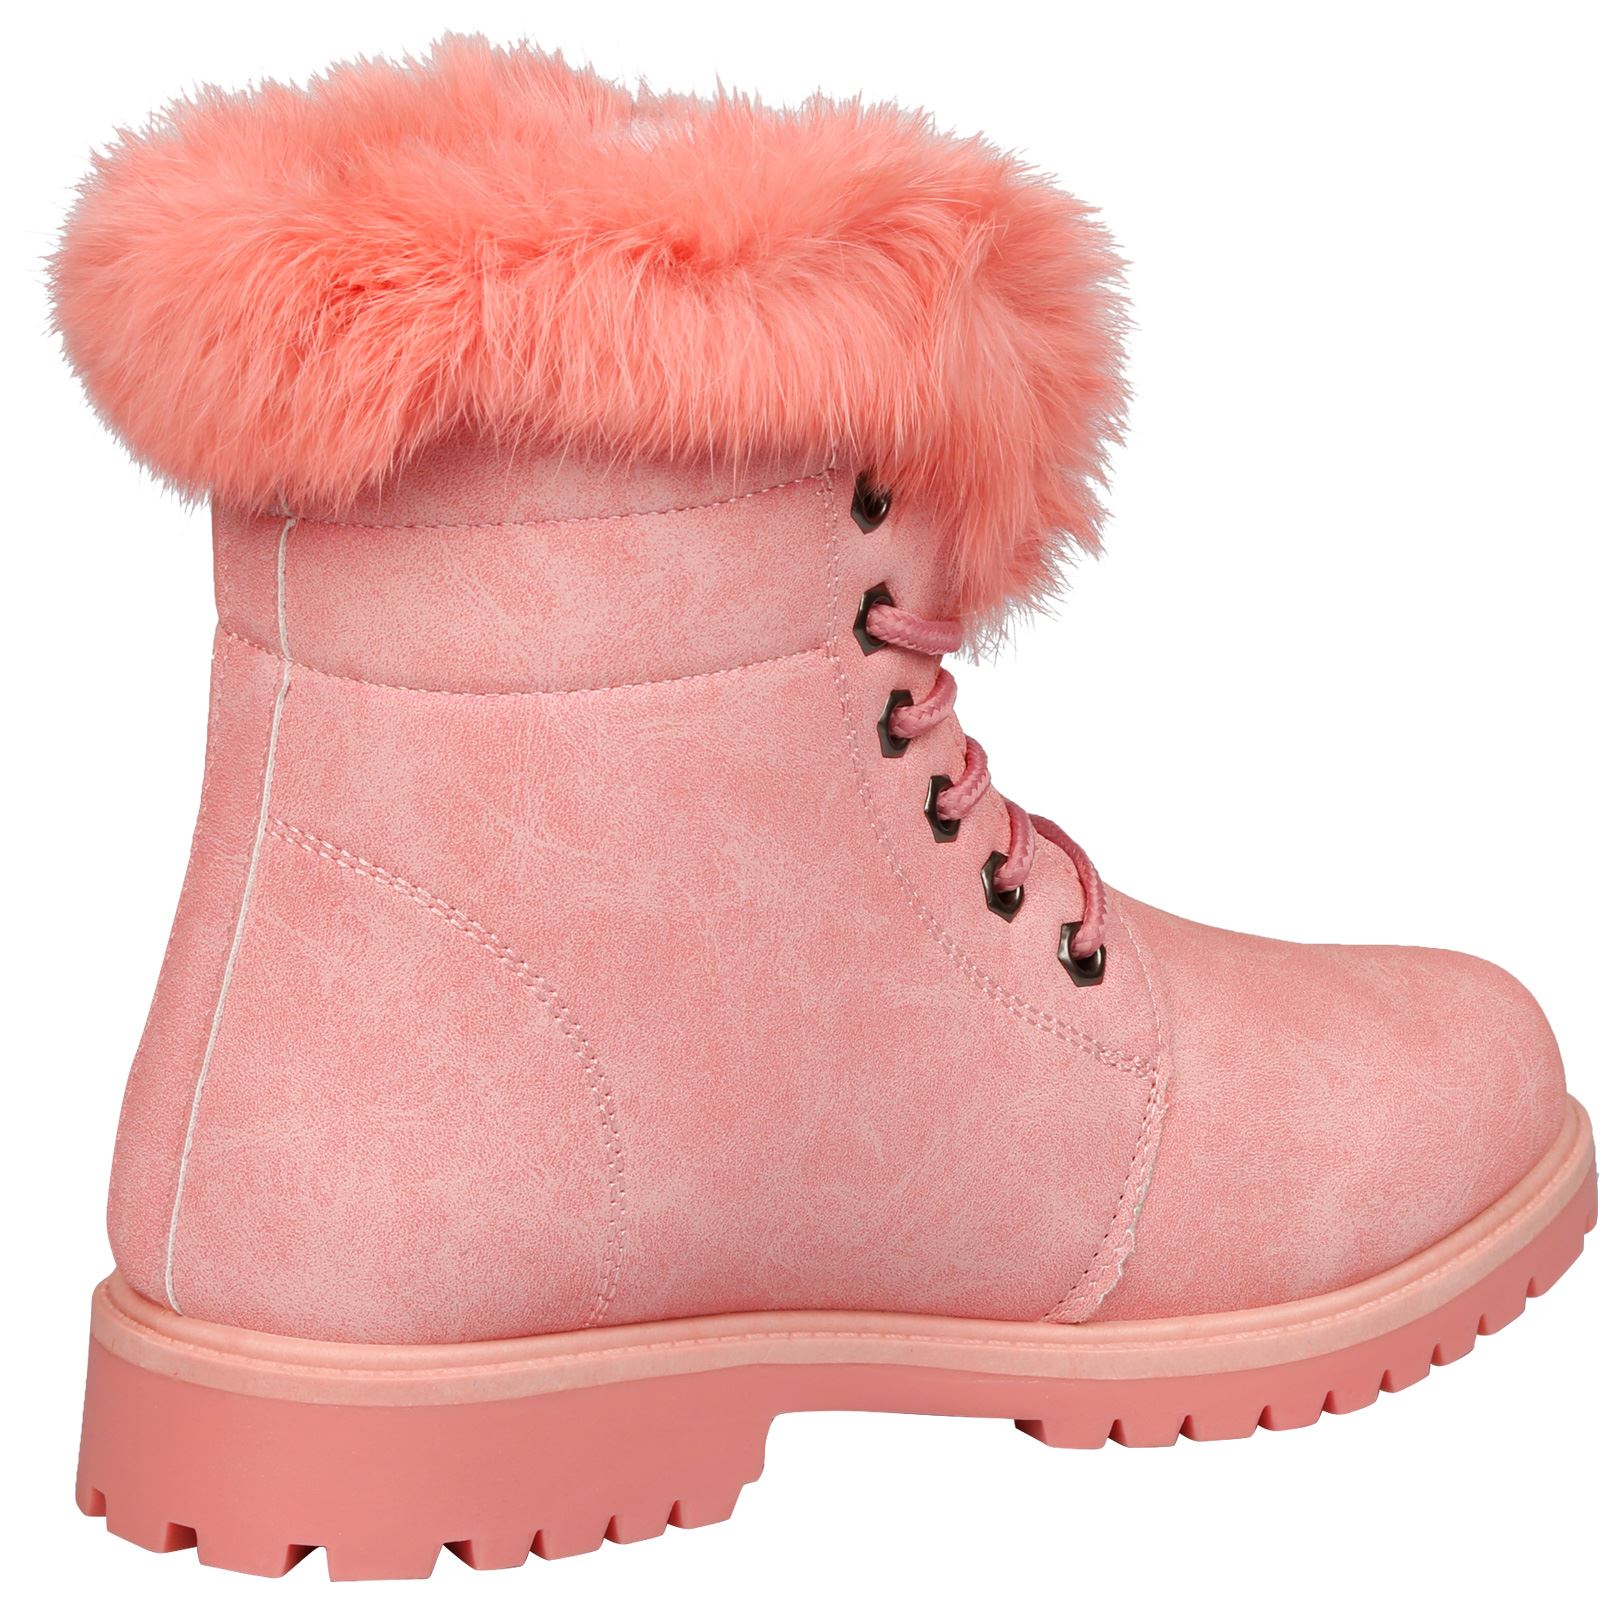 NEW-WOMEN-SHOES-LADIES-FUR-LINED-LOW-HEEL-LACE-UP-ANKLE-BOOTS-CASUAL-STYLE-SIZE thumbnail 18